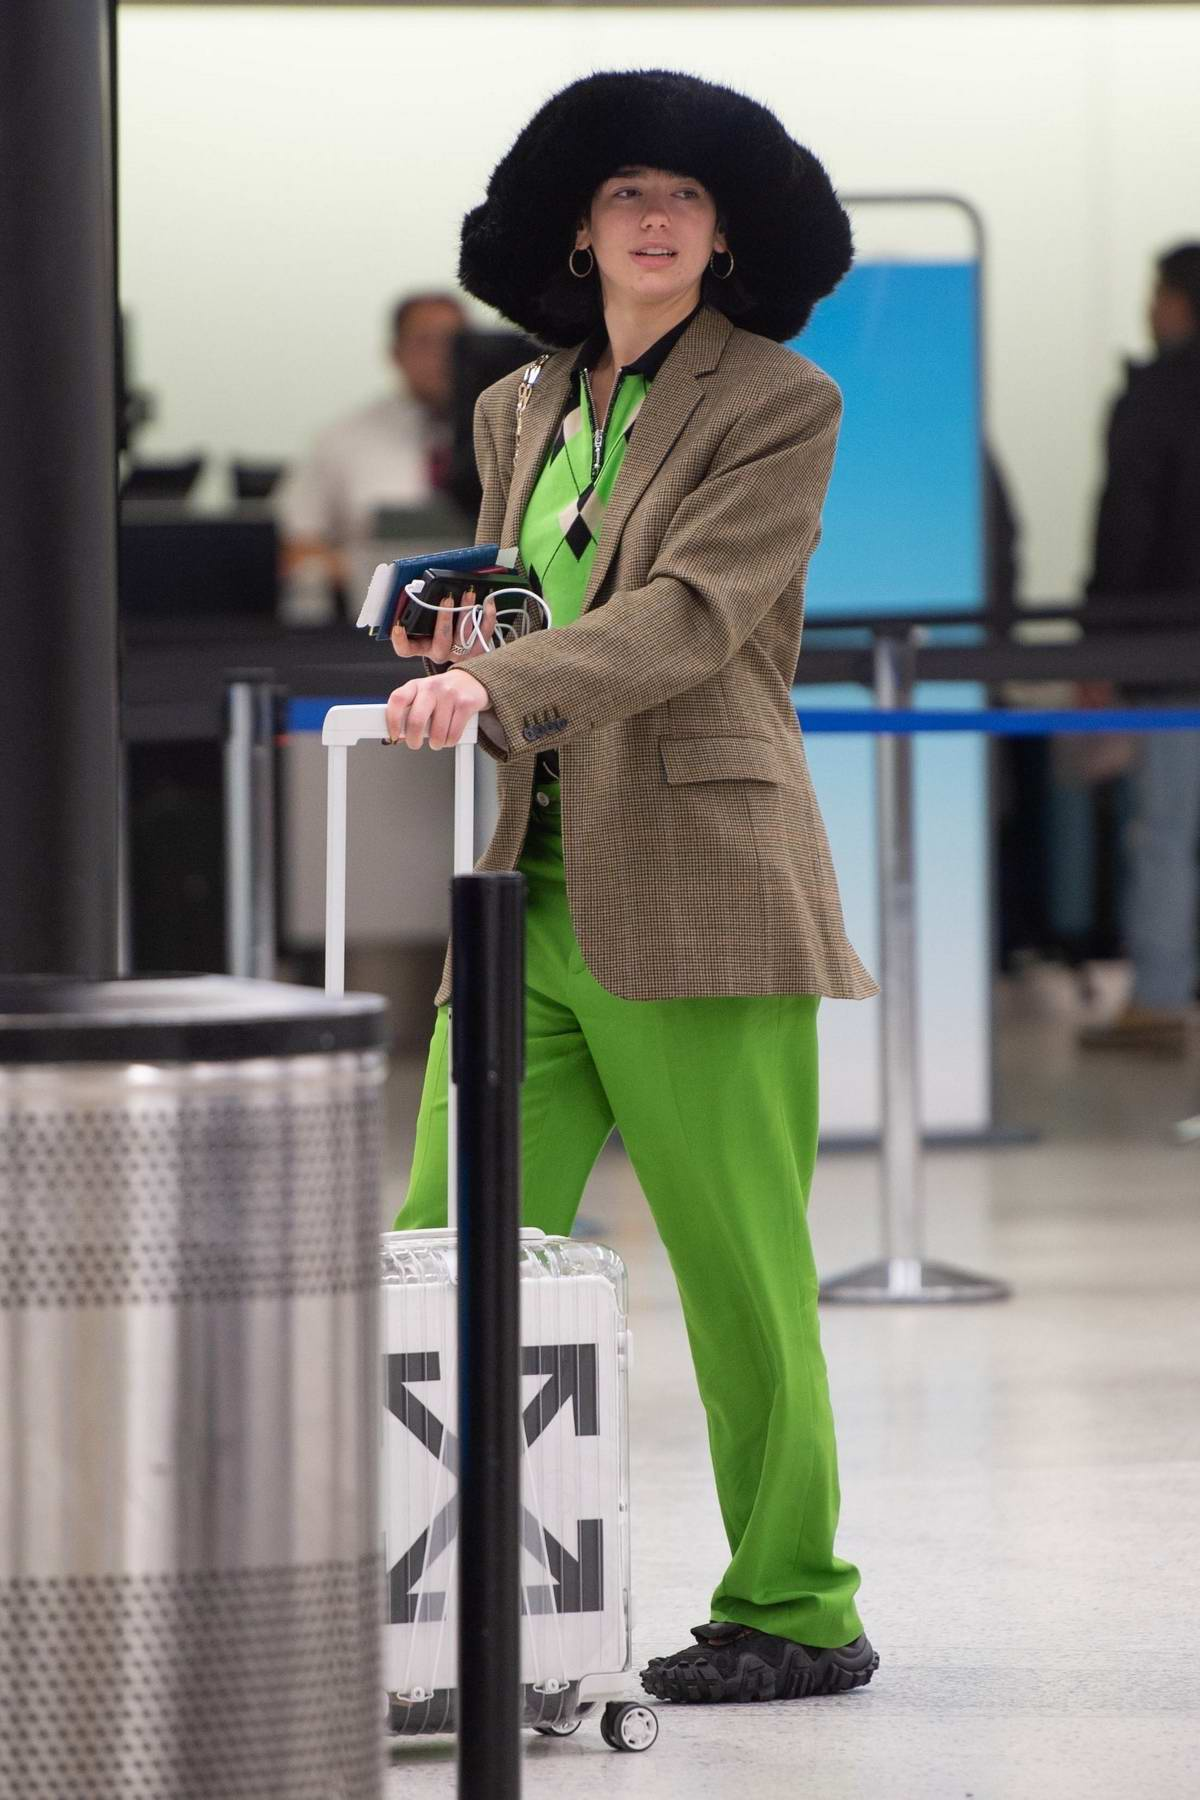 Dua Lipa wears a bright neon green suit and fur hat as arrives to catch a flight out of JFK in New York City